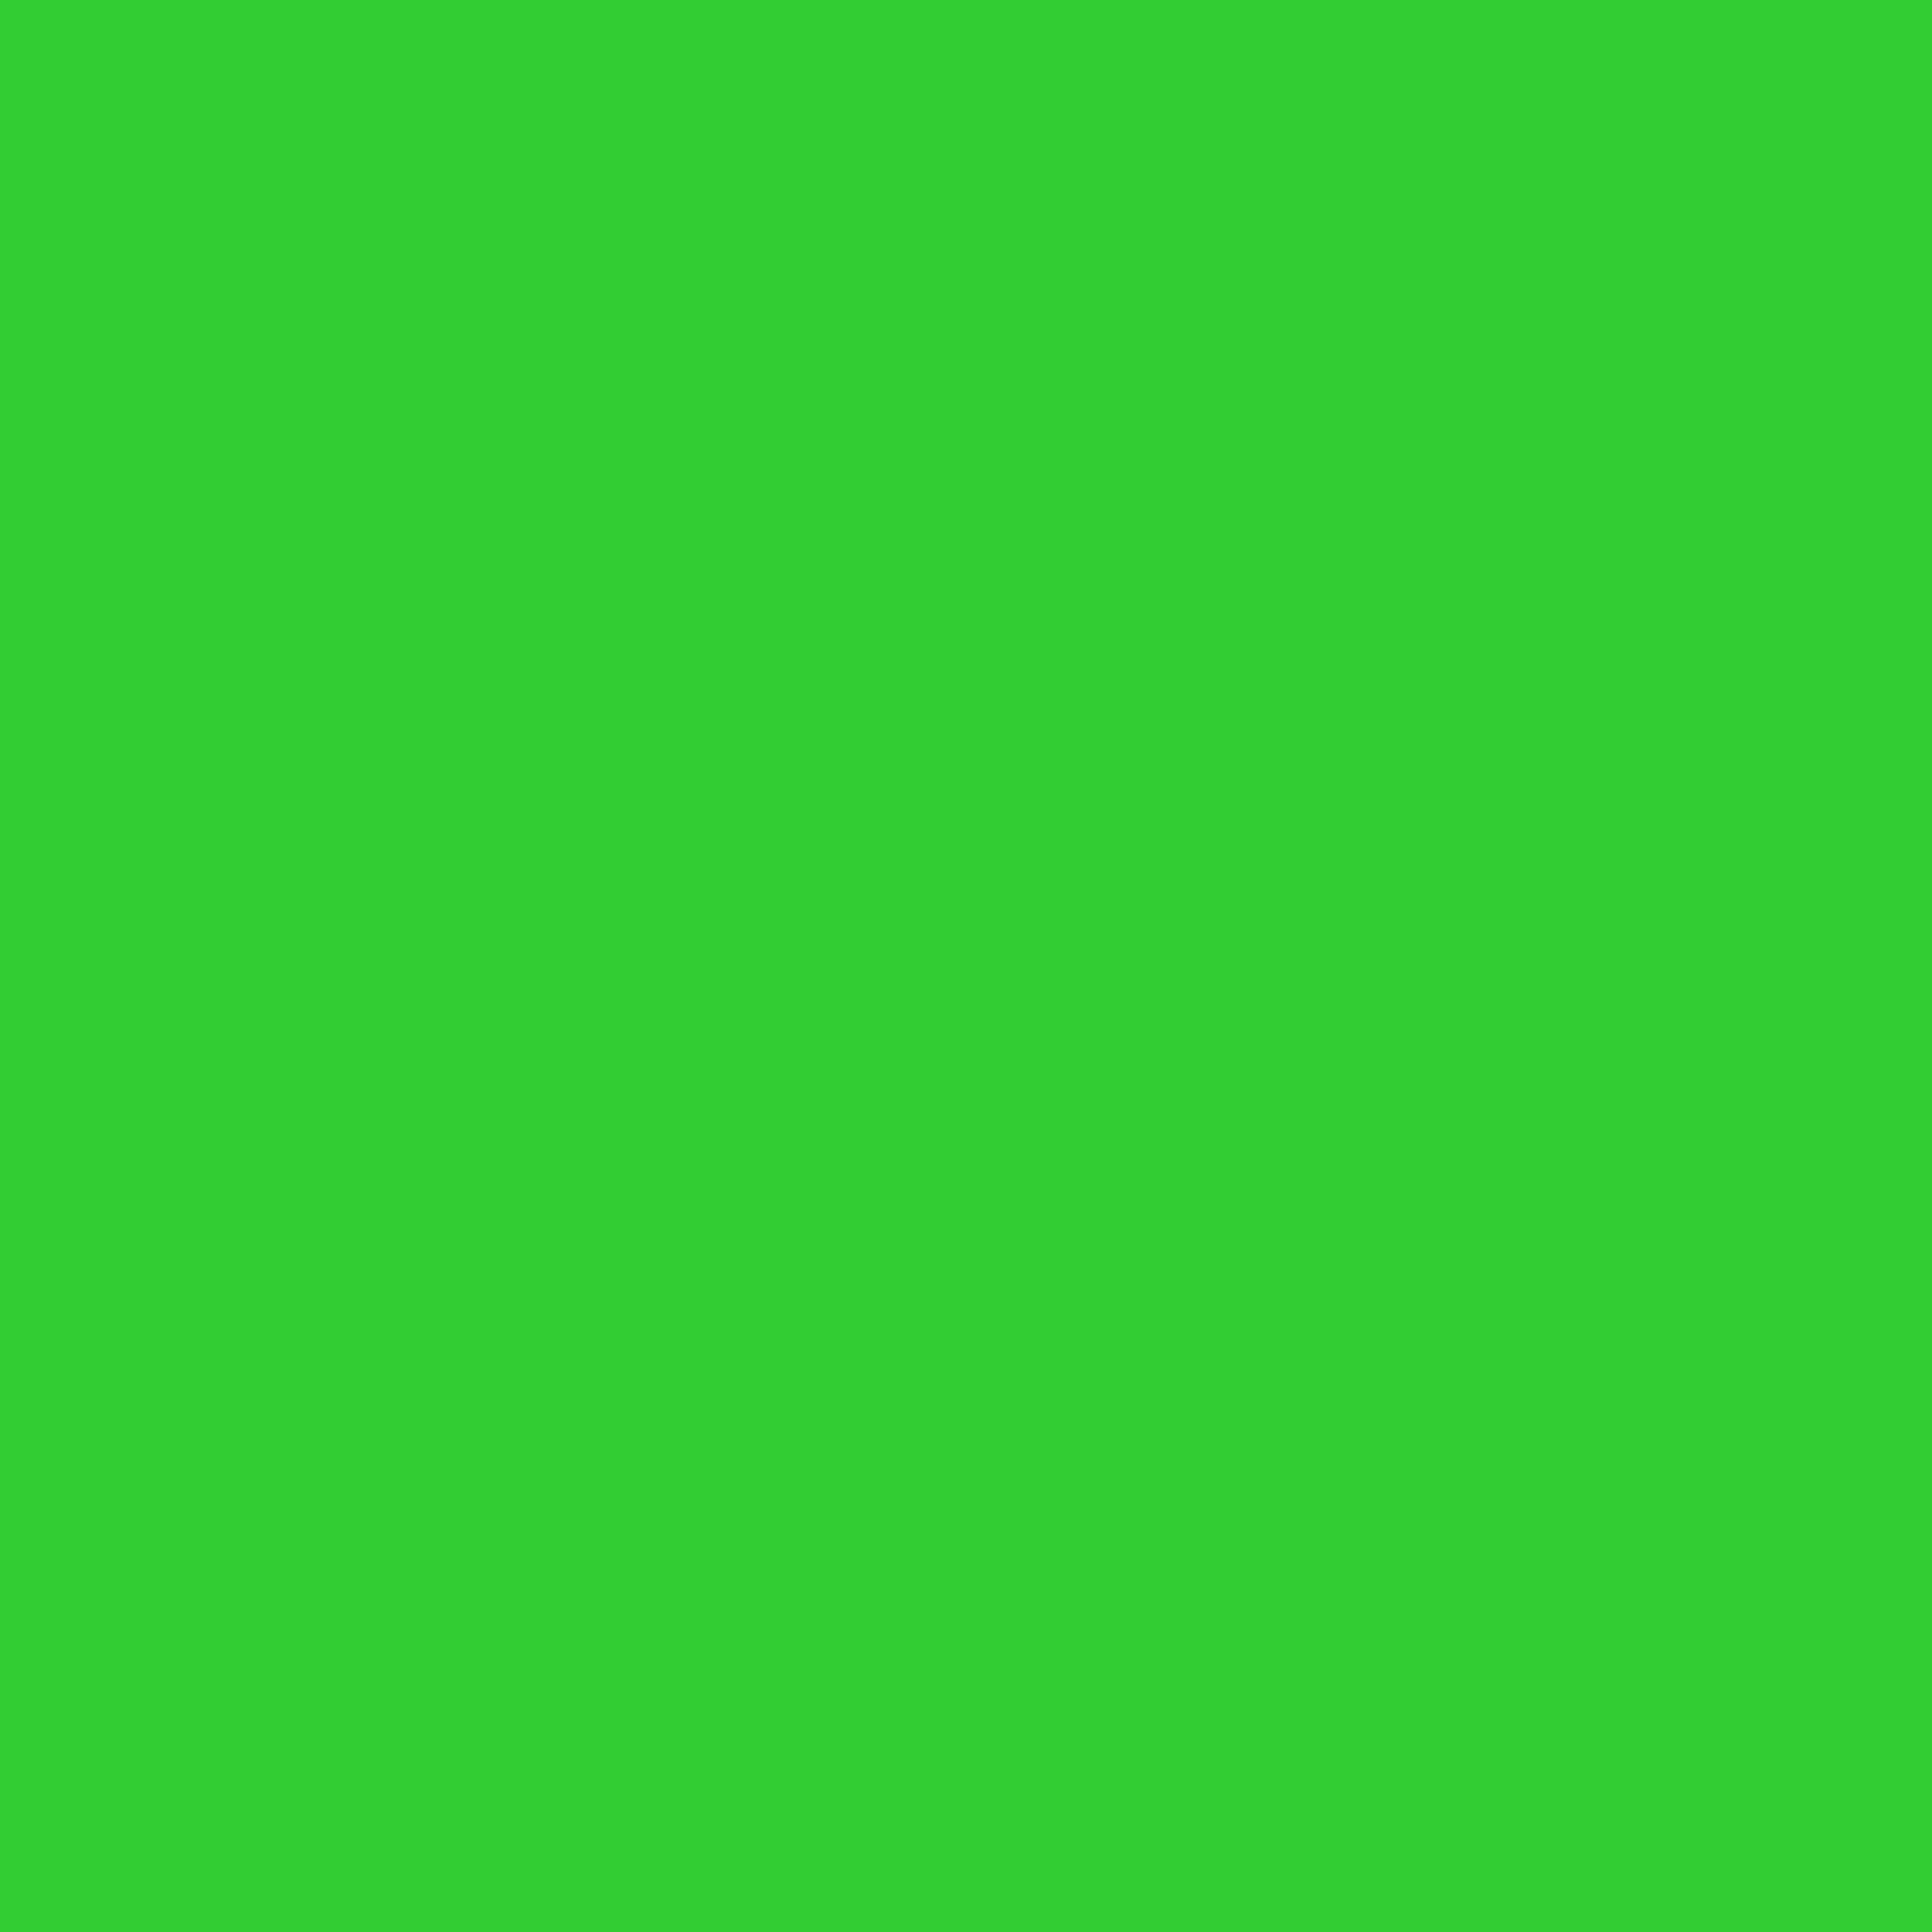 2048x2048 Lime Green Solid Color Background